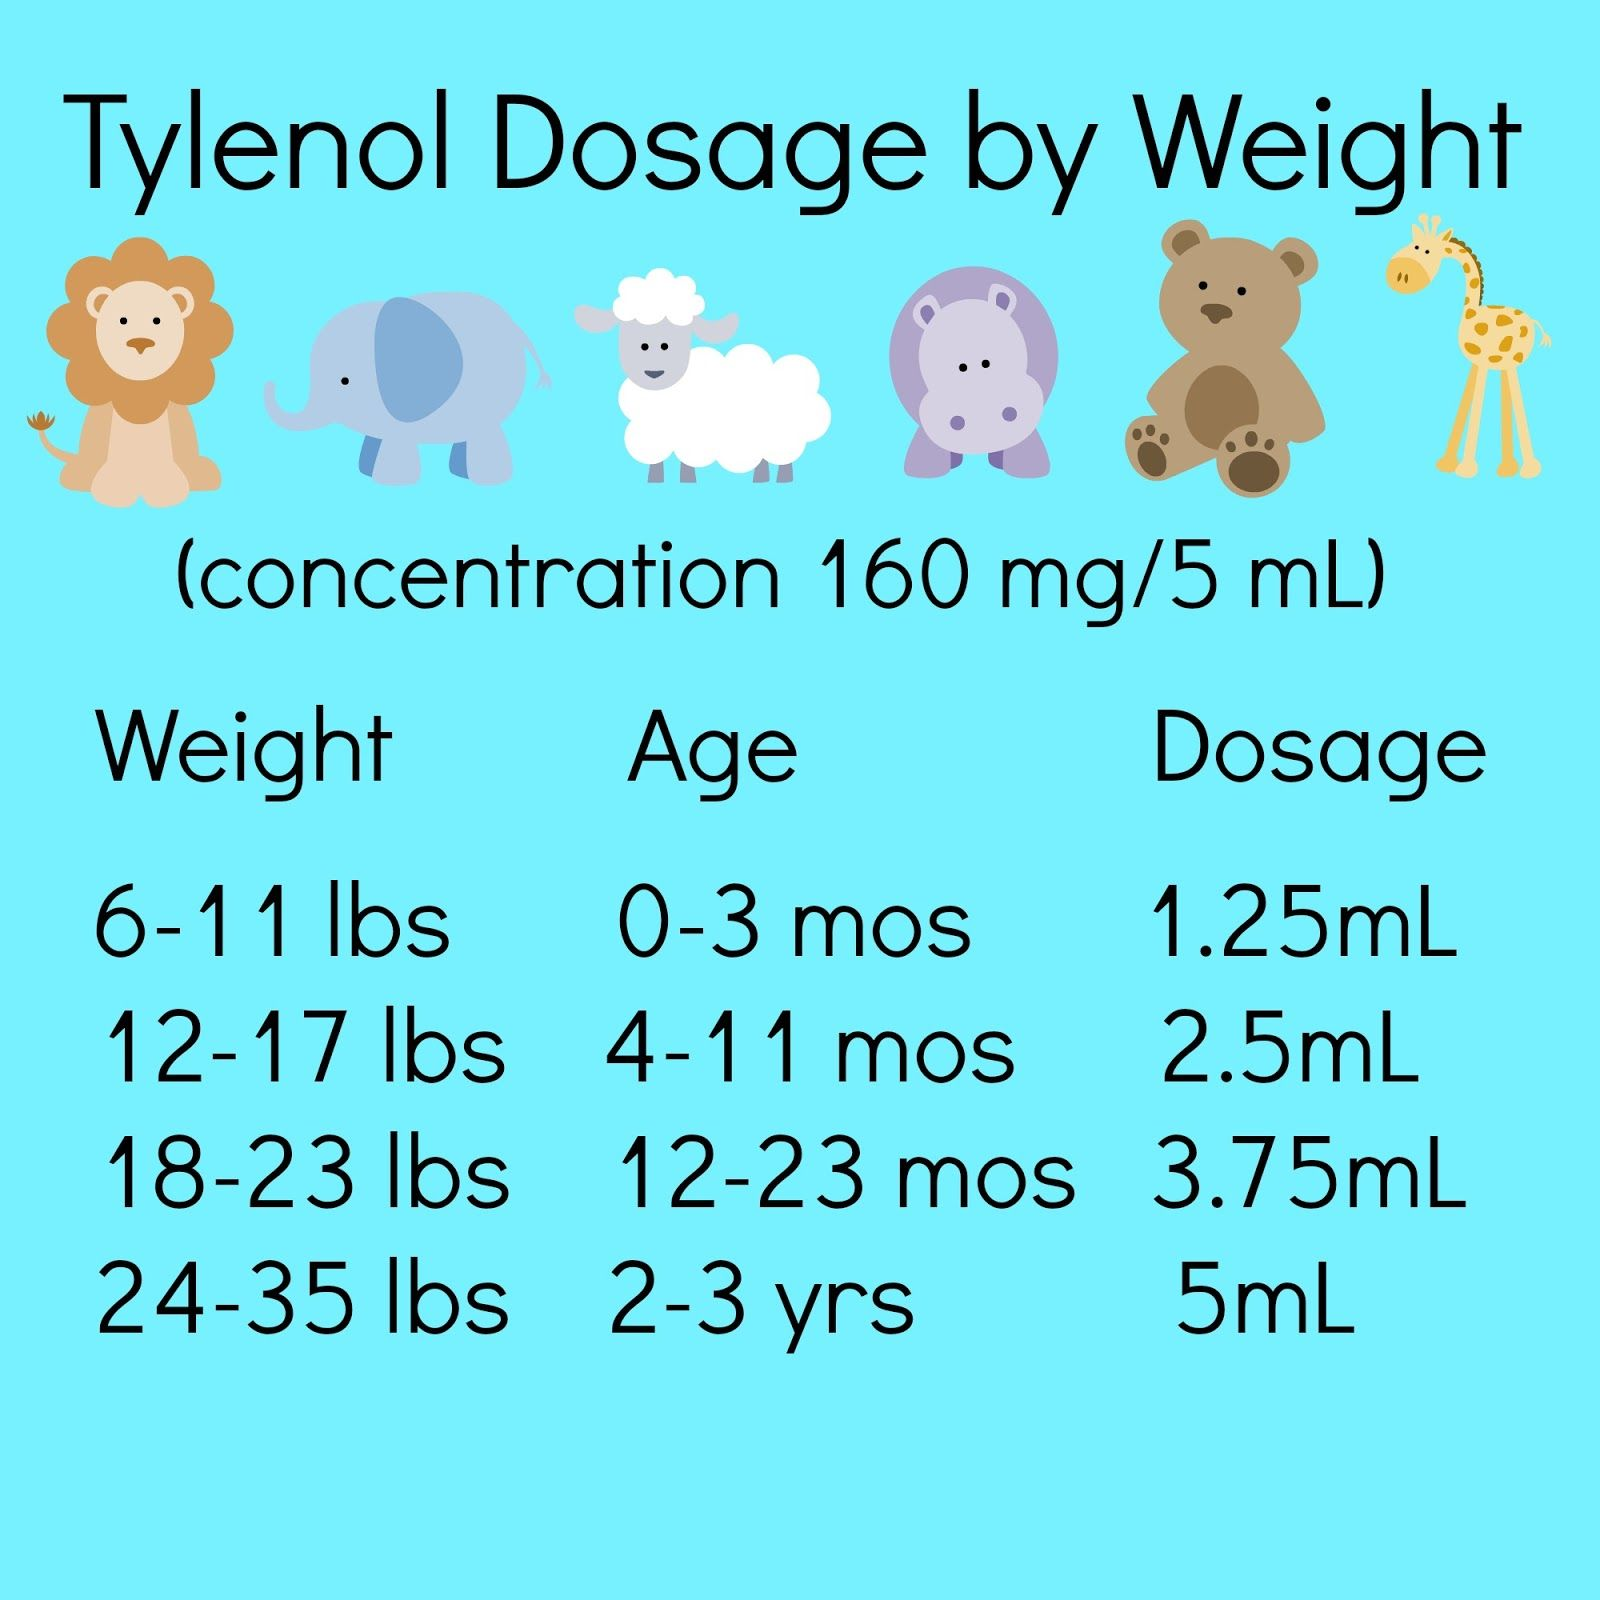 Tylenol dosage for babies and toddlers new concentration via tips on survival with a sick baby tylenol dosage chart by weight print this out and keep it with your childrens tylenol nvjuhfo Image collections